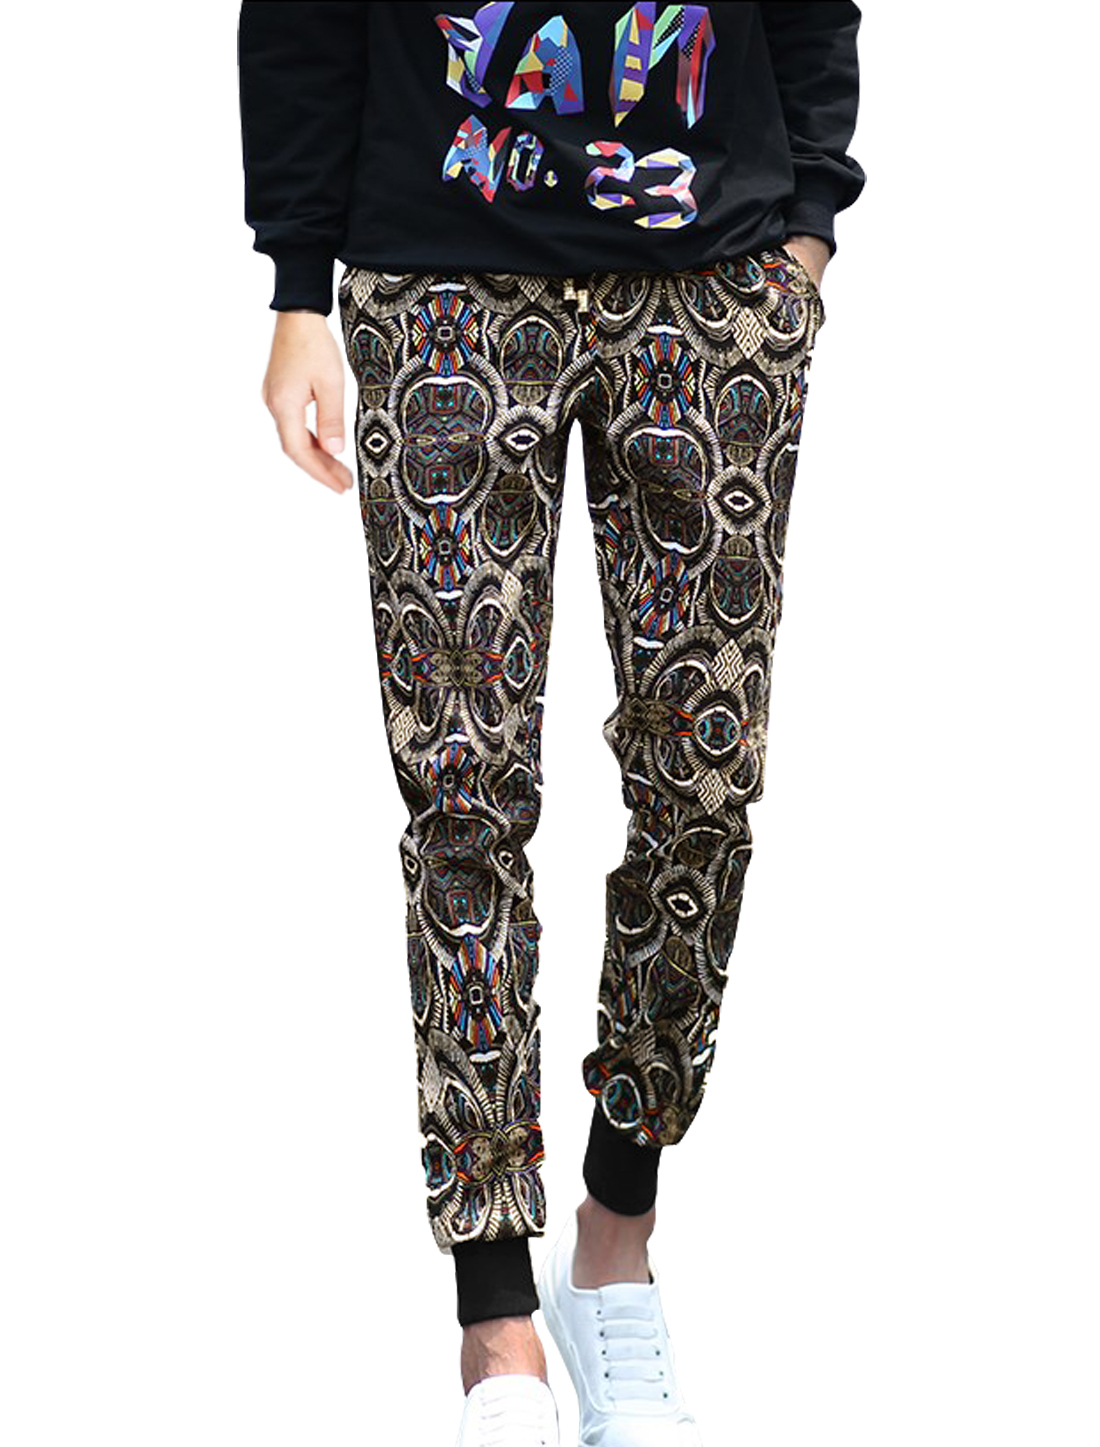 Men Drawstring Waist Novelty Prints Casual Pants Black W30